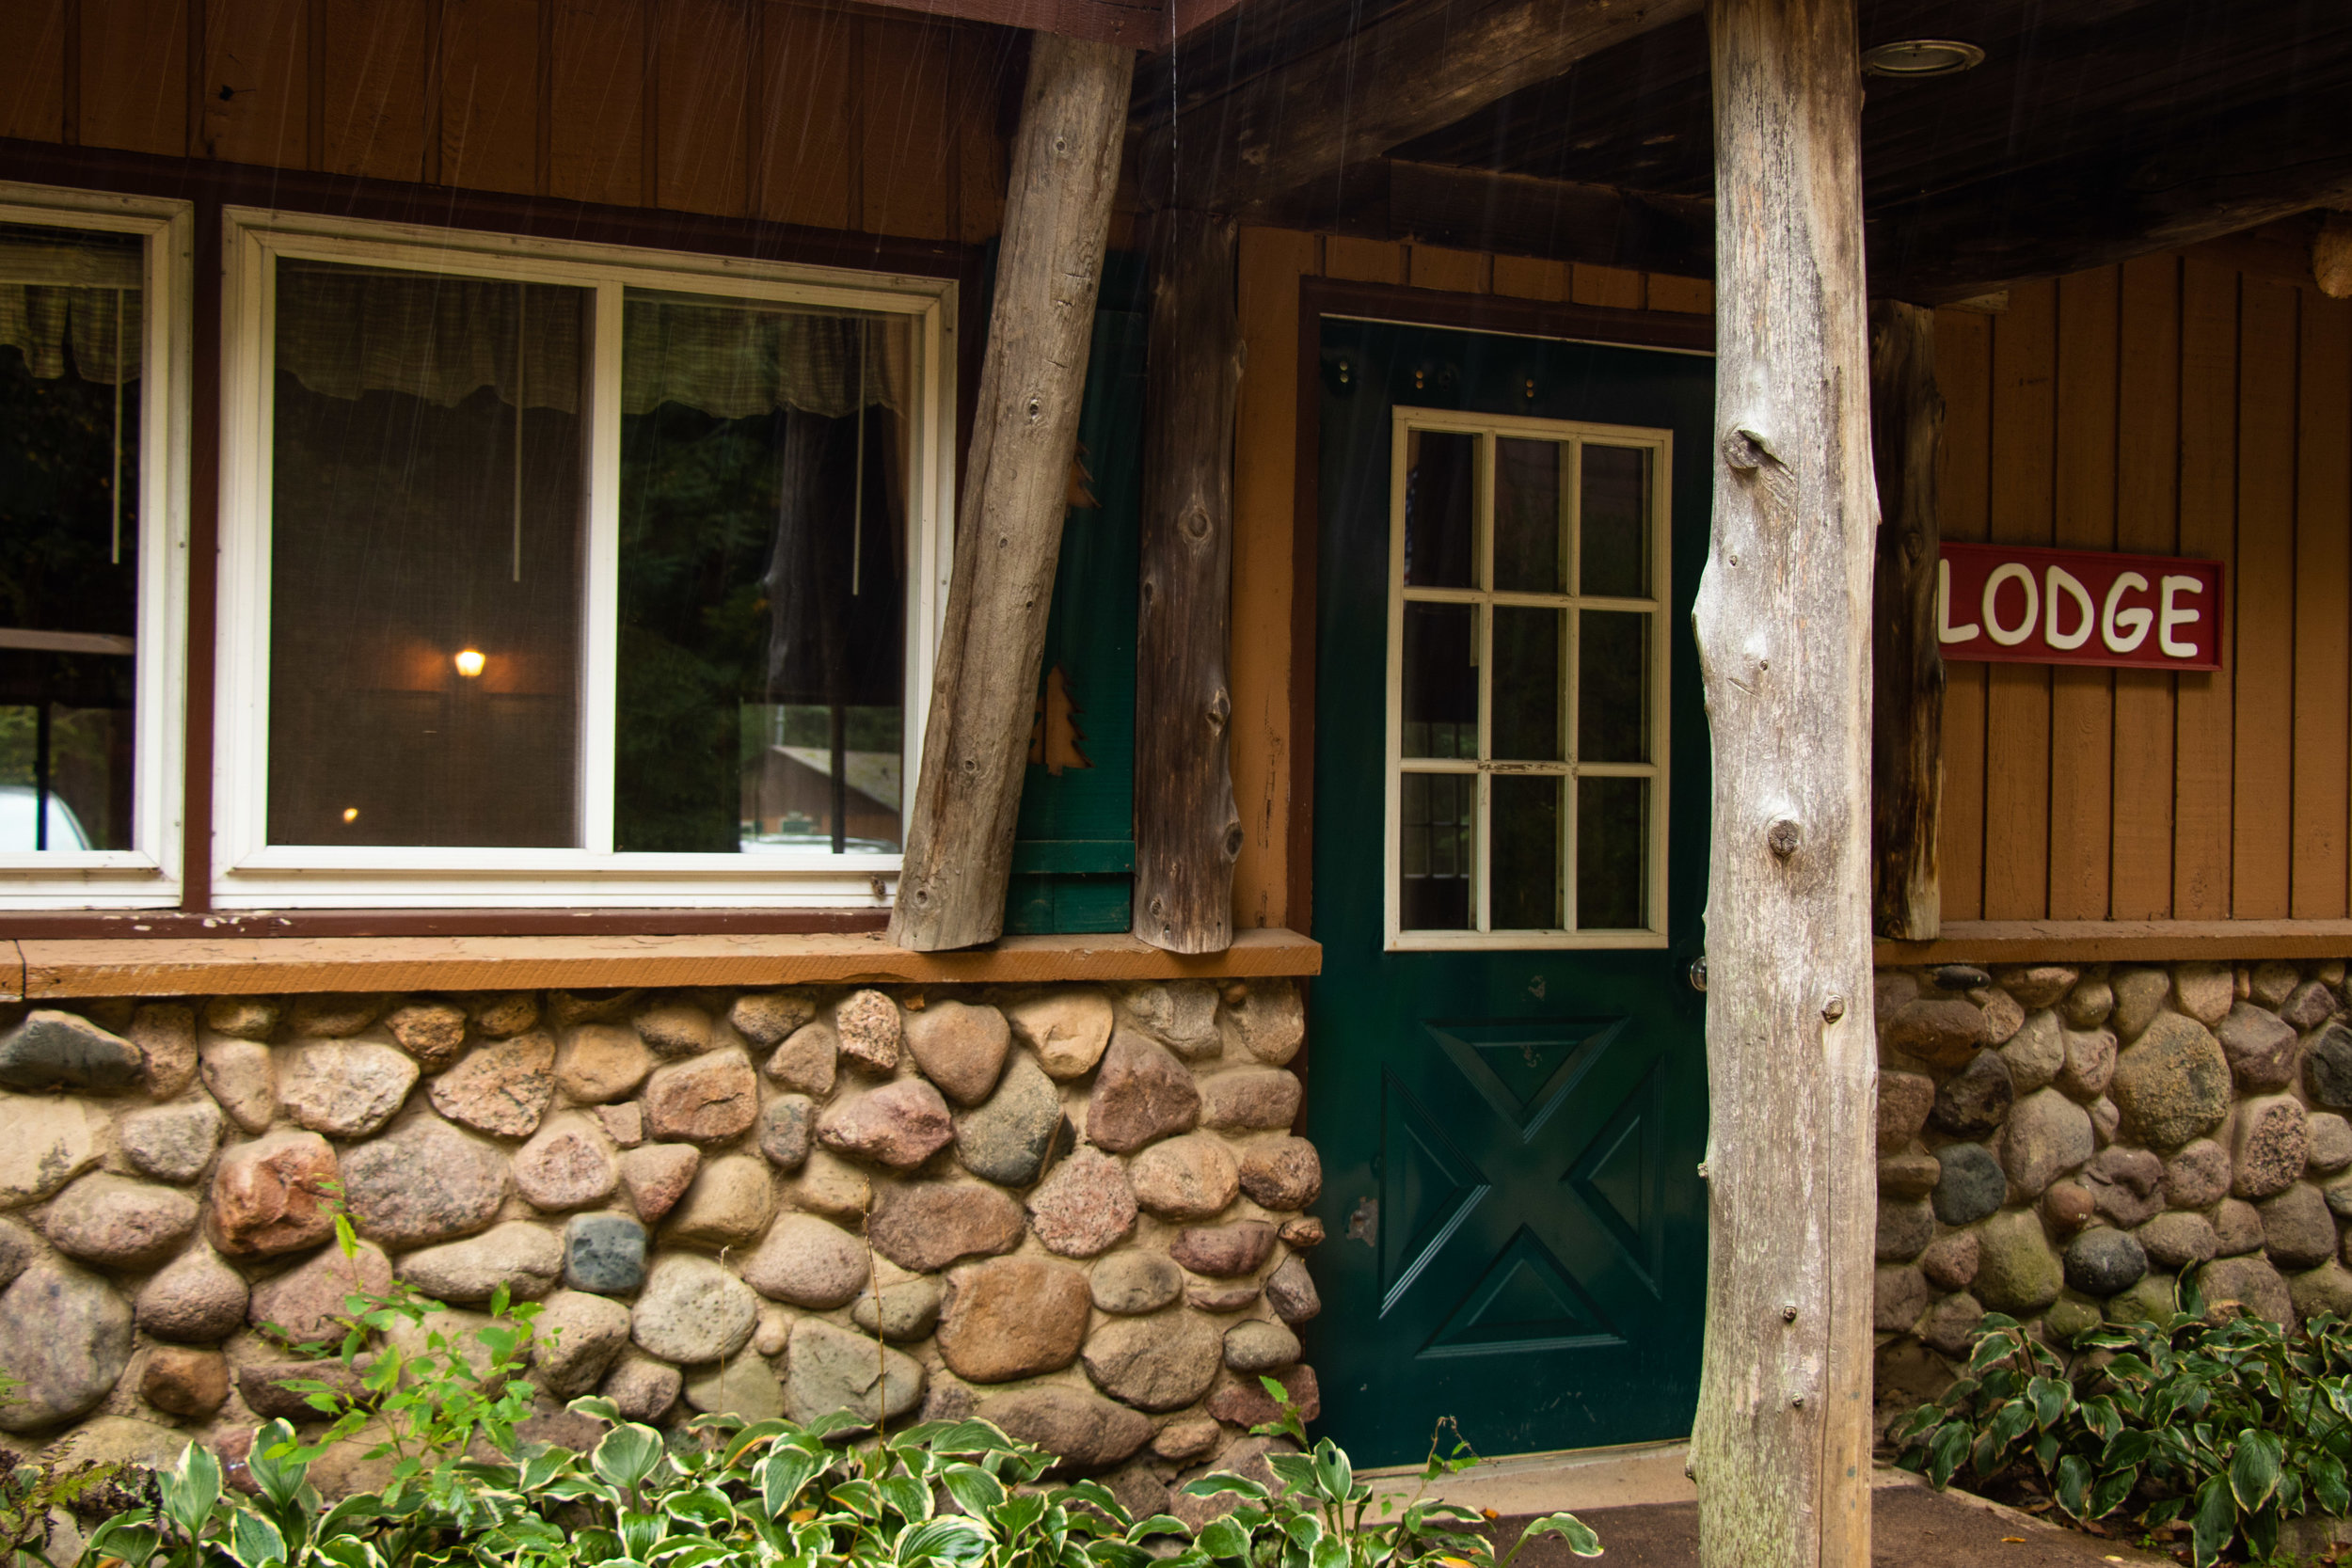 The Lodge - During the summer, the Lodge is used for small group sessions, and the Lodge Rooms are used for staff housing. In the fall, winter, or spring, the Lodge is used for meeting space and lodging for retreat groups.